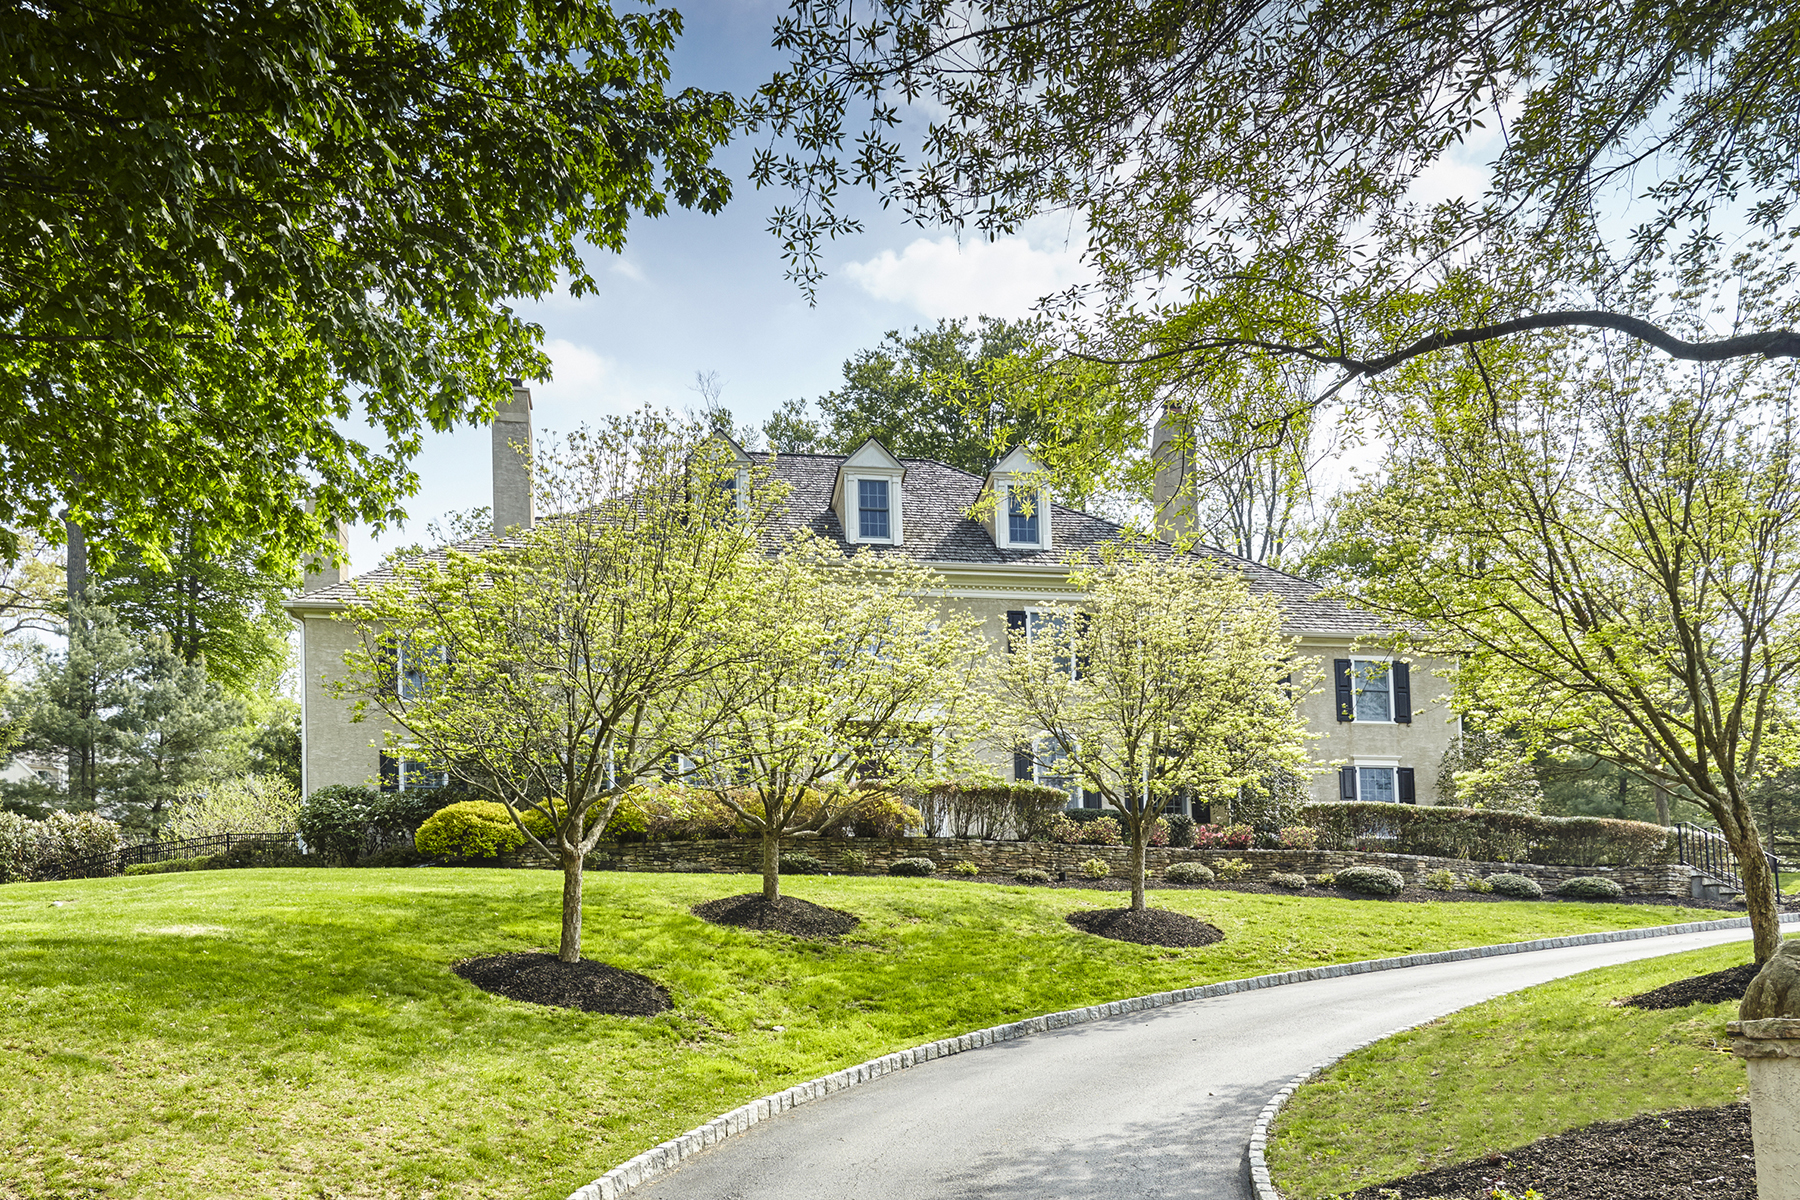 Single Family Home for Sale at Harrison Estate 5 Harrison Drive Newtown Square, Pennsylvania 19073 United States